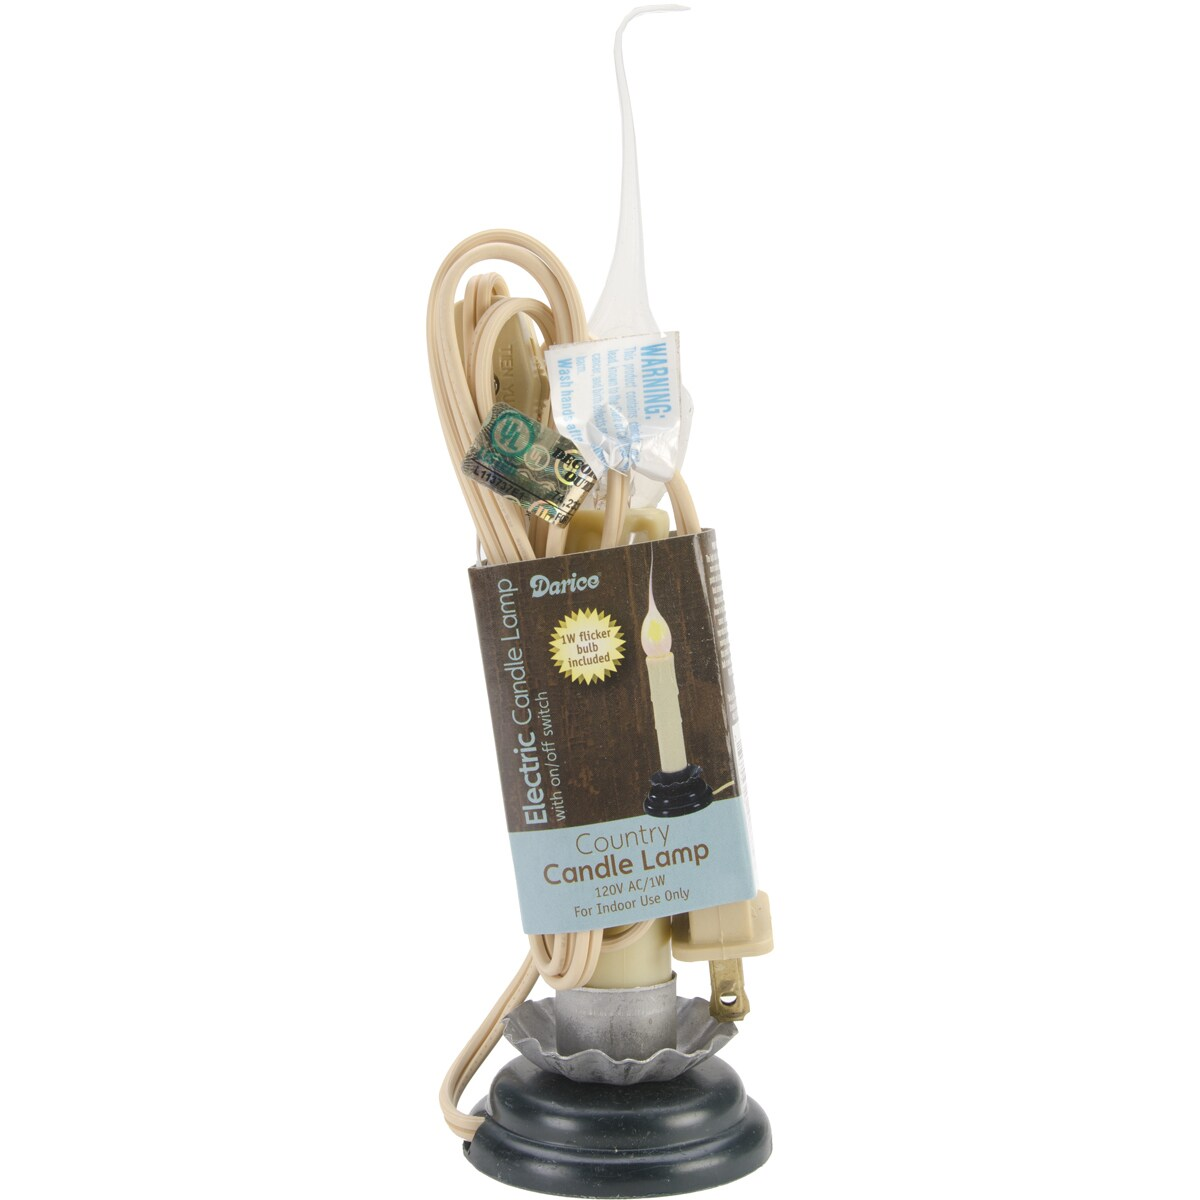 DARICE Electric Country Candle Flickering Lamp6in (6in), ...